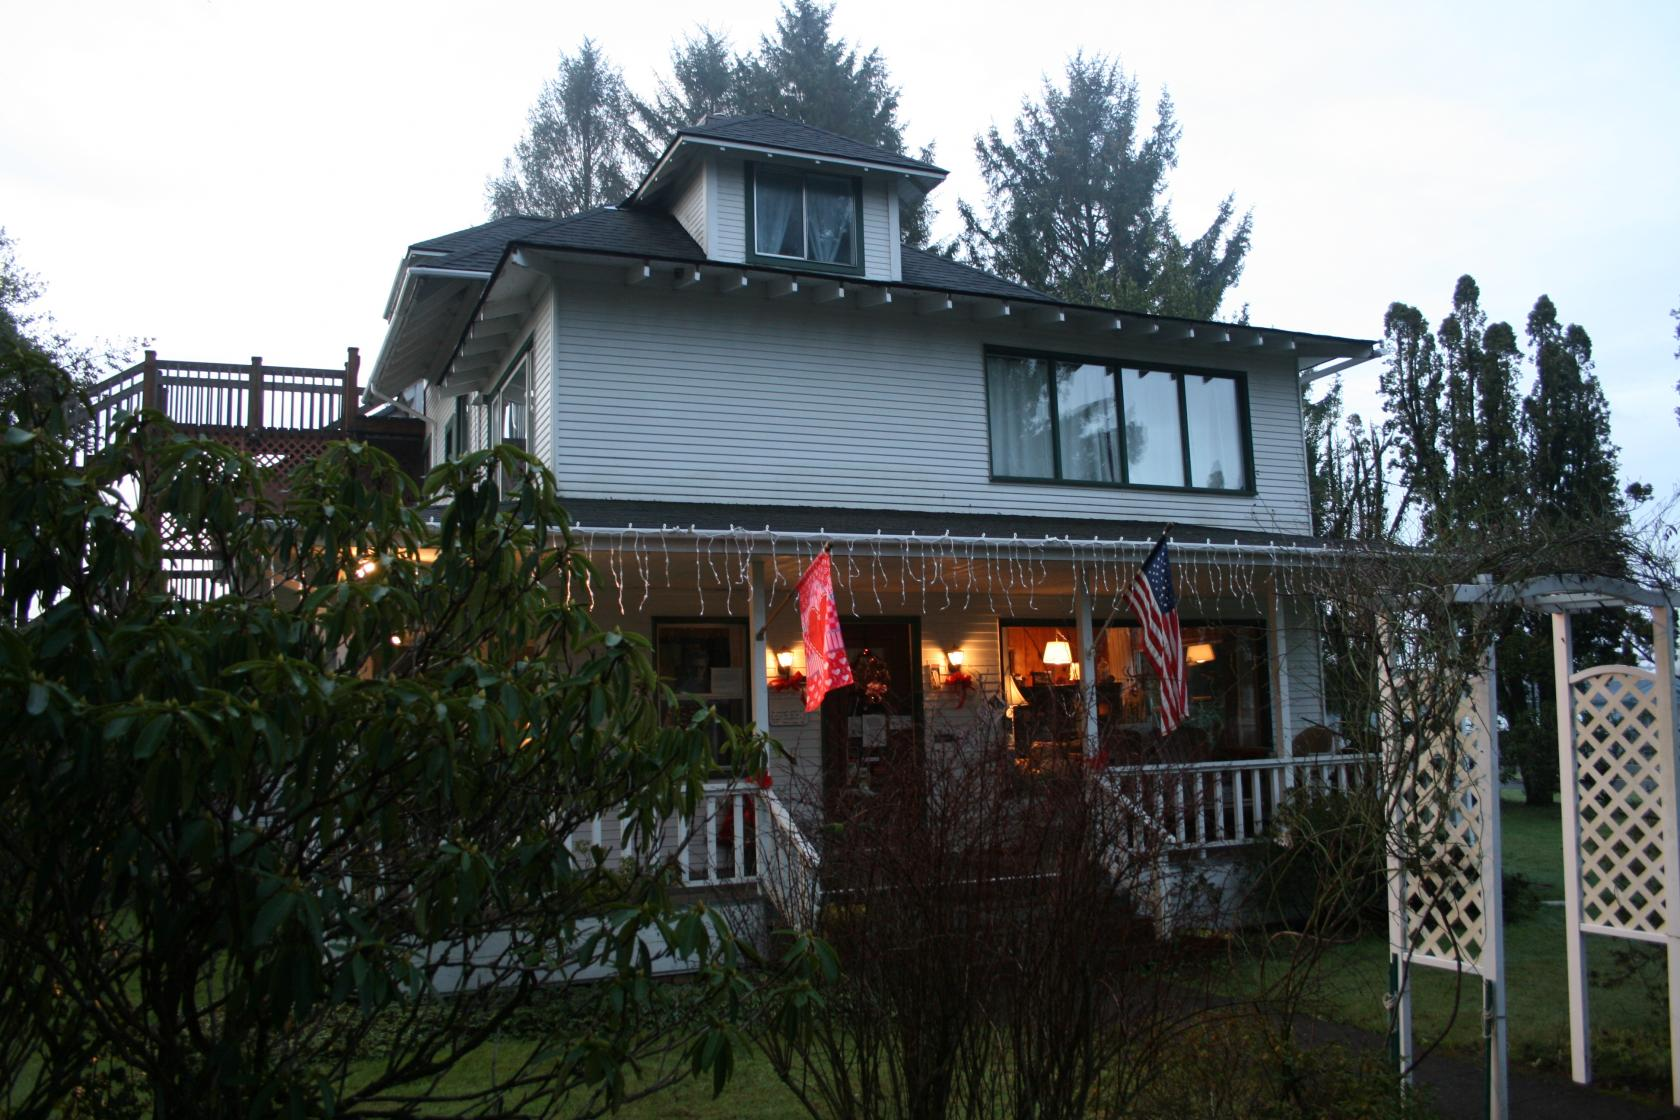 Forks Washington Photo: The Cullen House (a.k.a. the Miller Tree Inn) - Without Baggage & Forks Washington Photo: The Cullen House (a.k.a. the Miller Tree ...